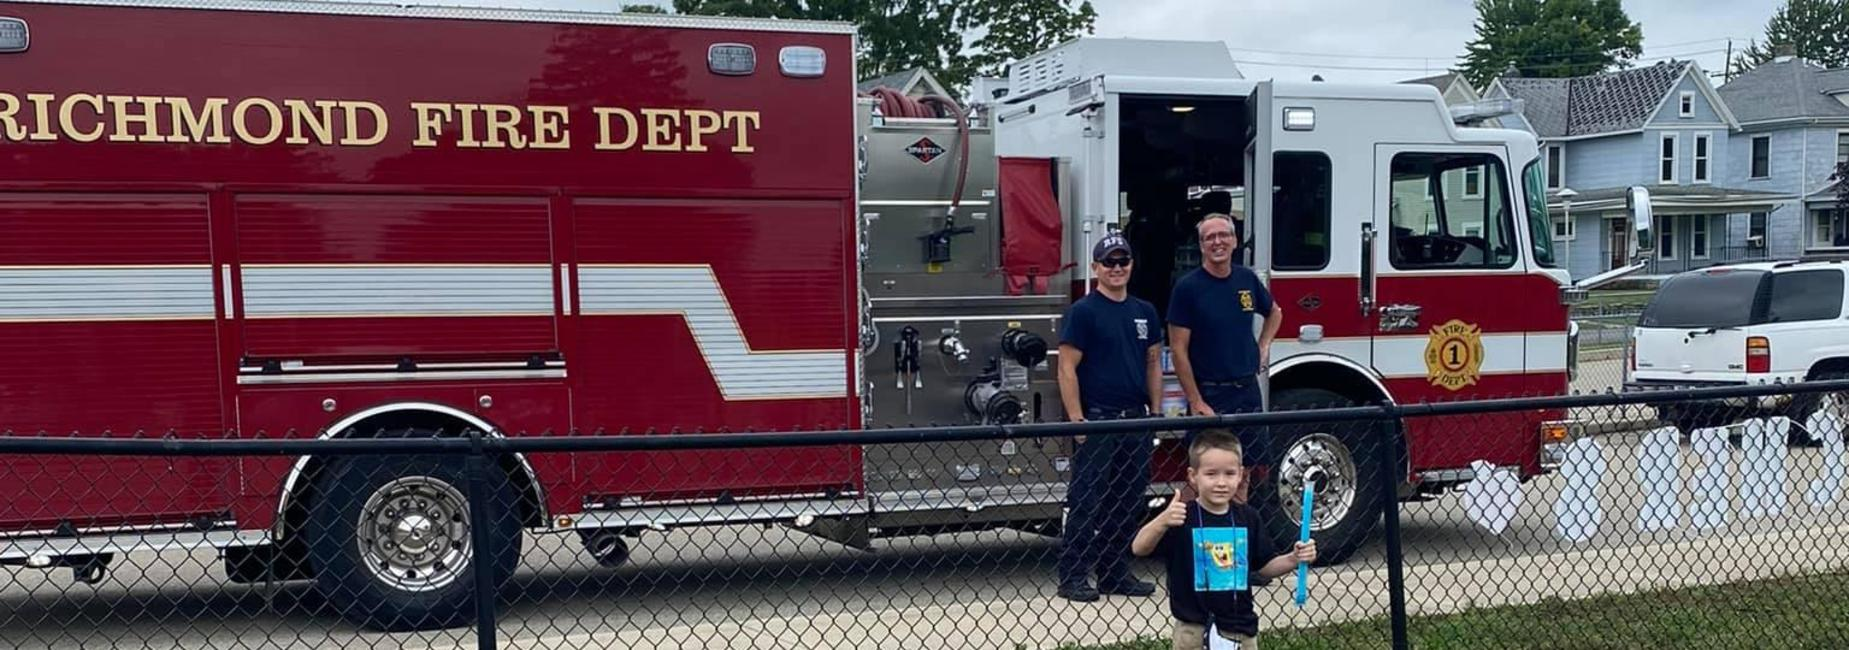 RFD dropping off popsicles at Starr Elementary.